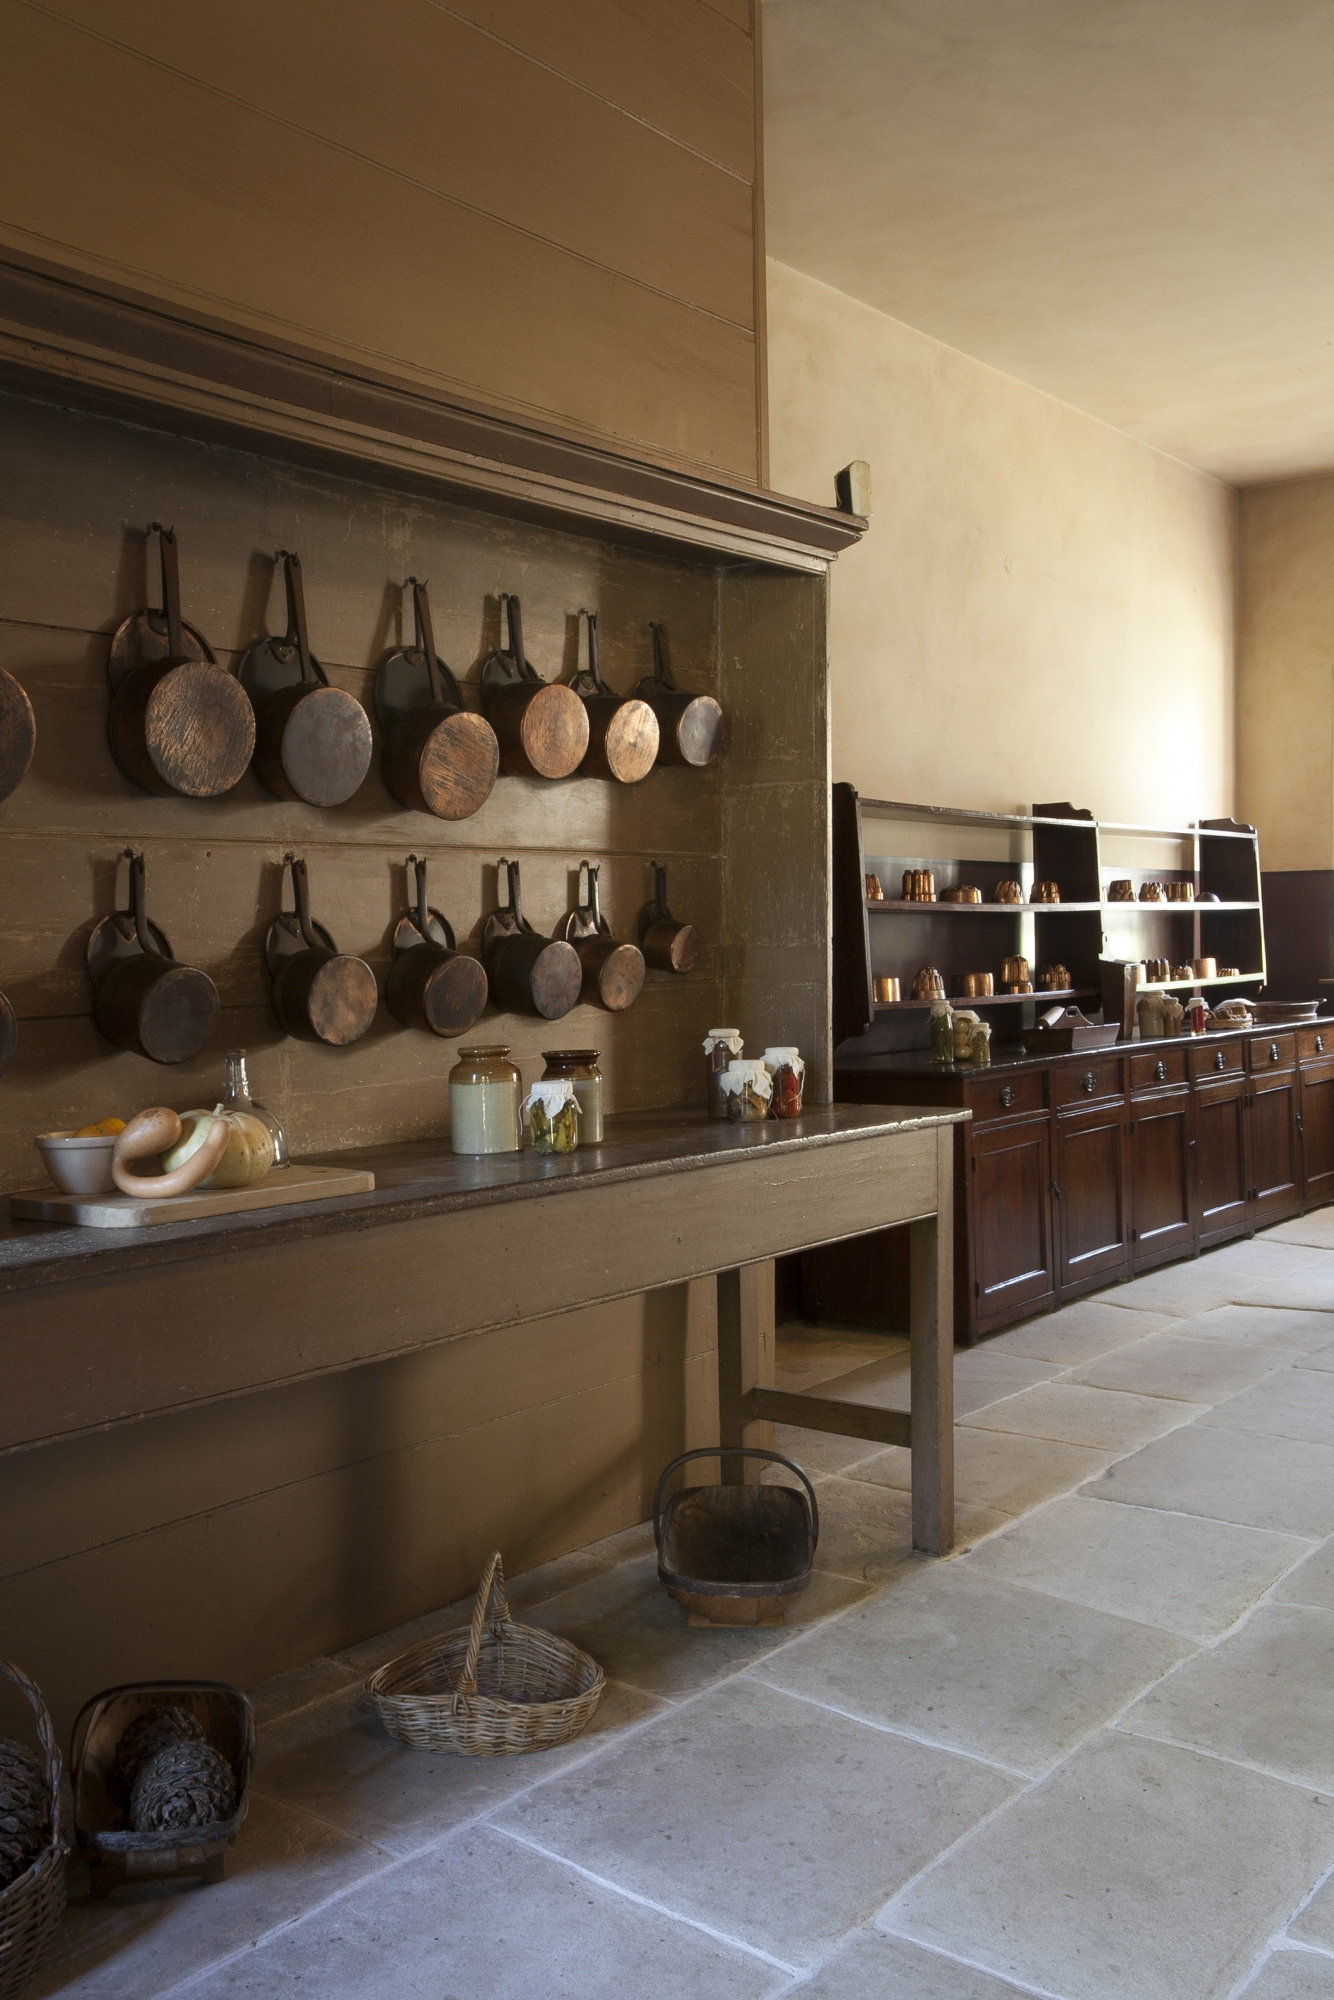 Two wooden dressers; one in foreground with series of hanging copper pots, one in background with copper jelly moulds.